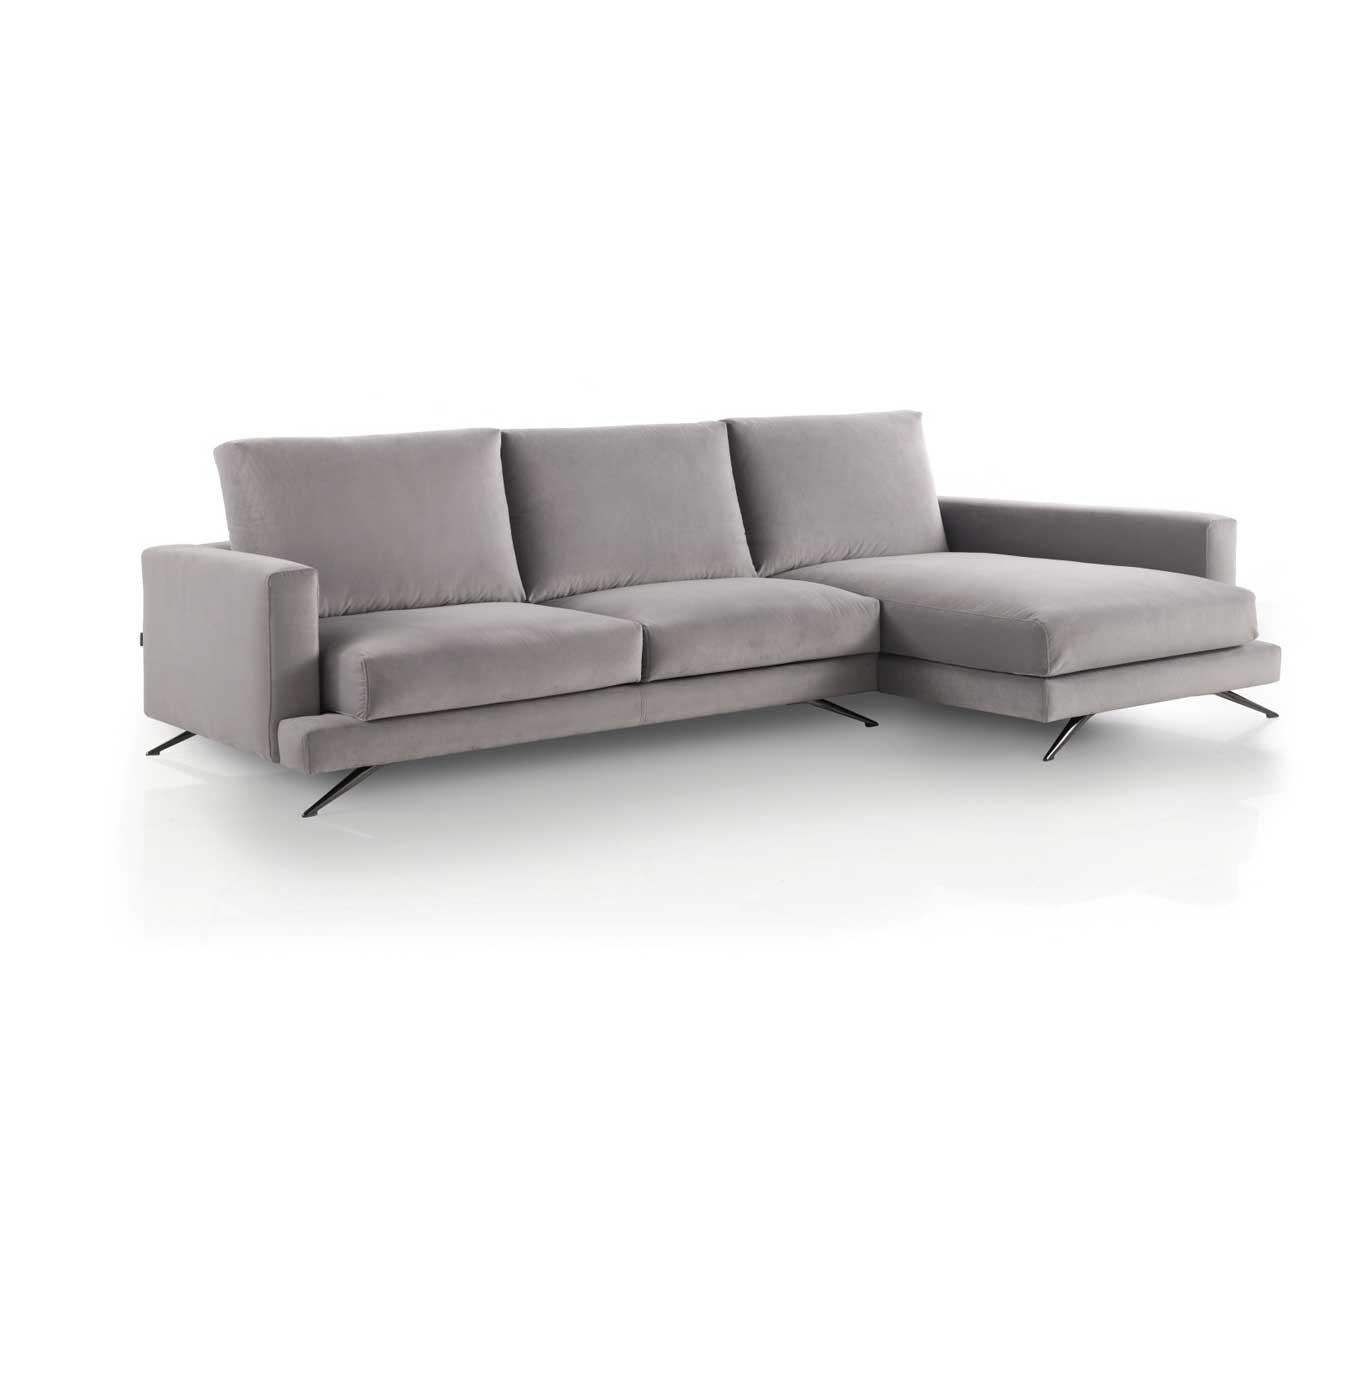 SOFA CHAISELONGUE ANDANTE - R.G